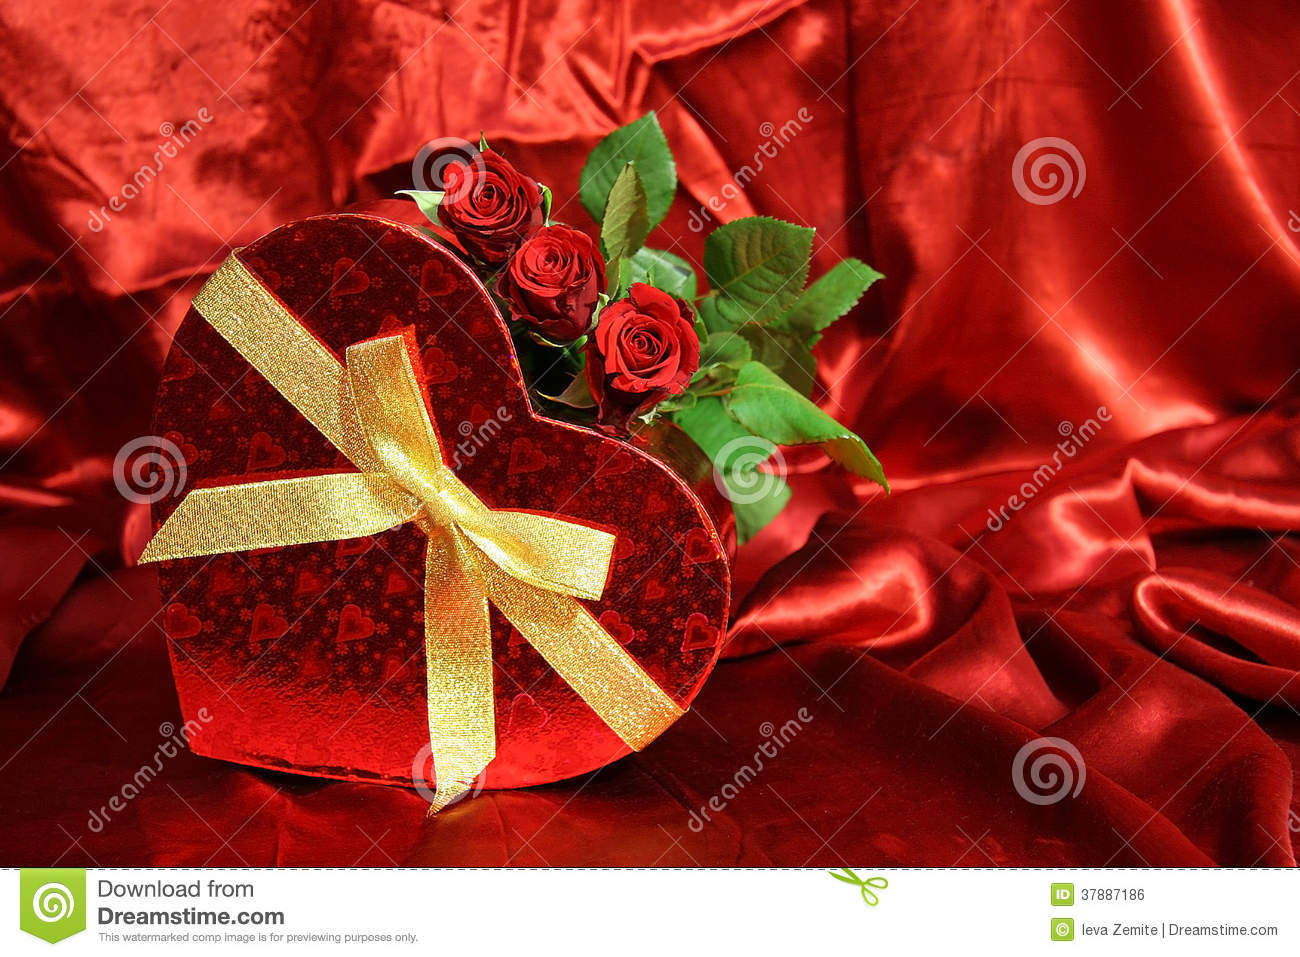 Download Valentines Day Romantic Love Stock Photo - Image of border, burning: 37887186